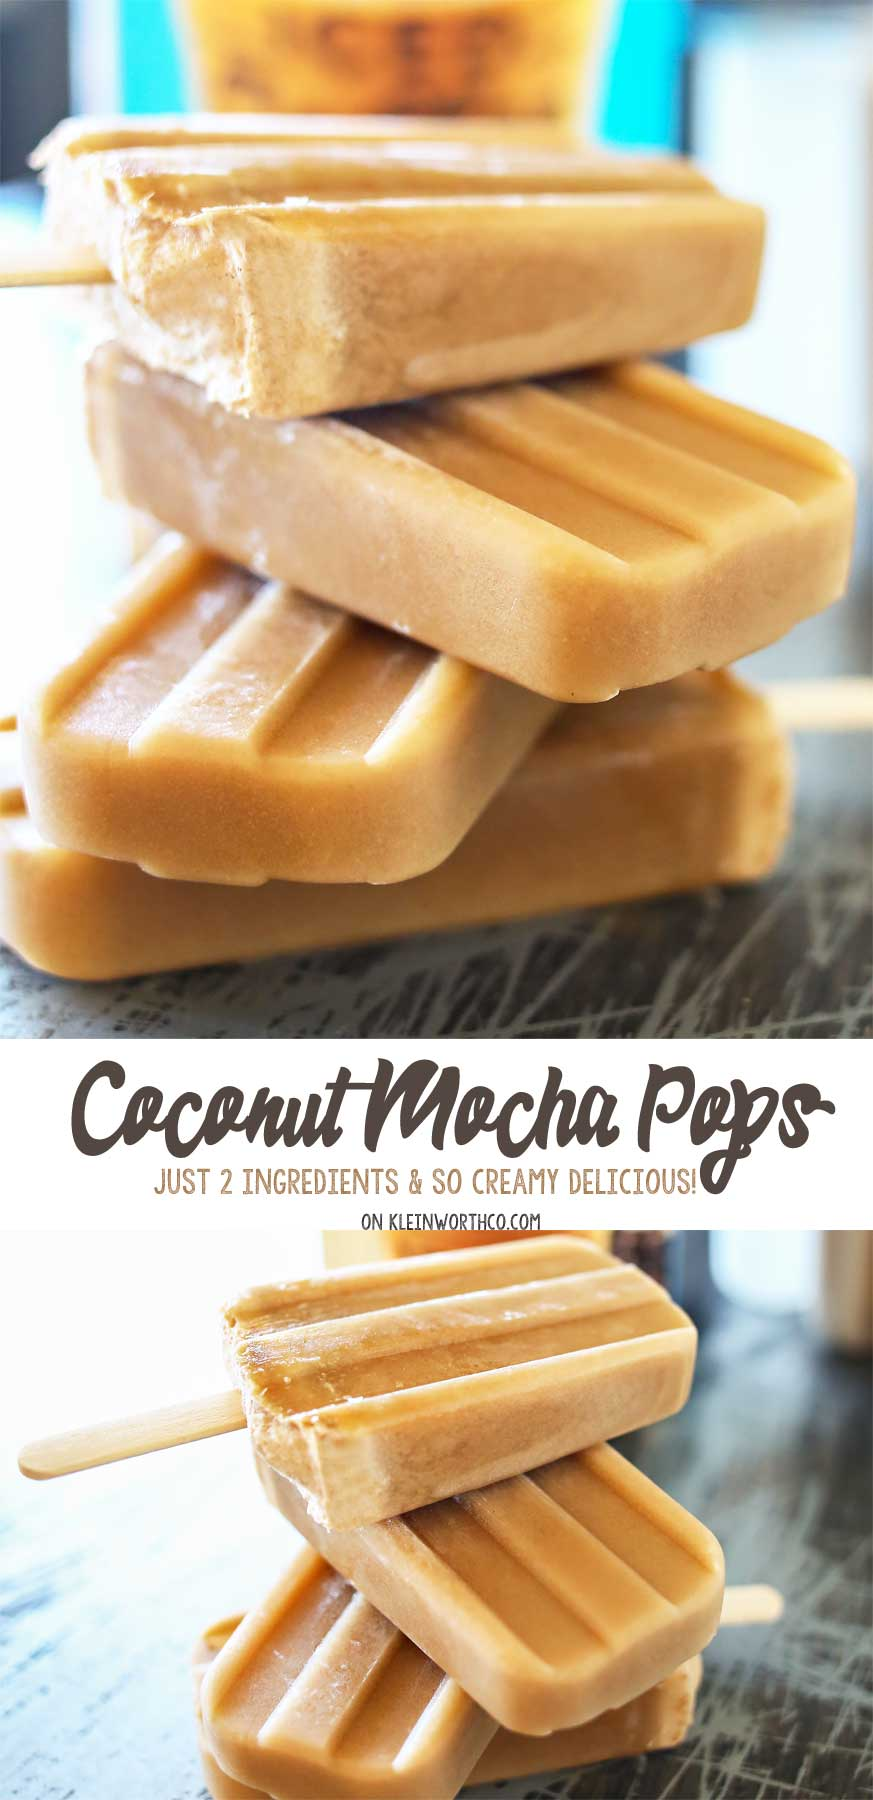 2 Ingredient Coconut Mocha Pops are made with just 2 simple ingredients & take minutes to make. I'm sure they'll be your favorite homemade popsicle recipe this summer.